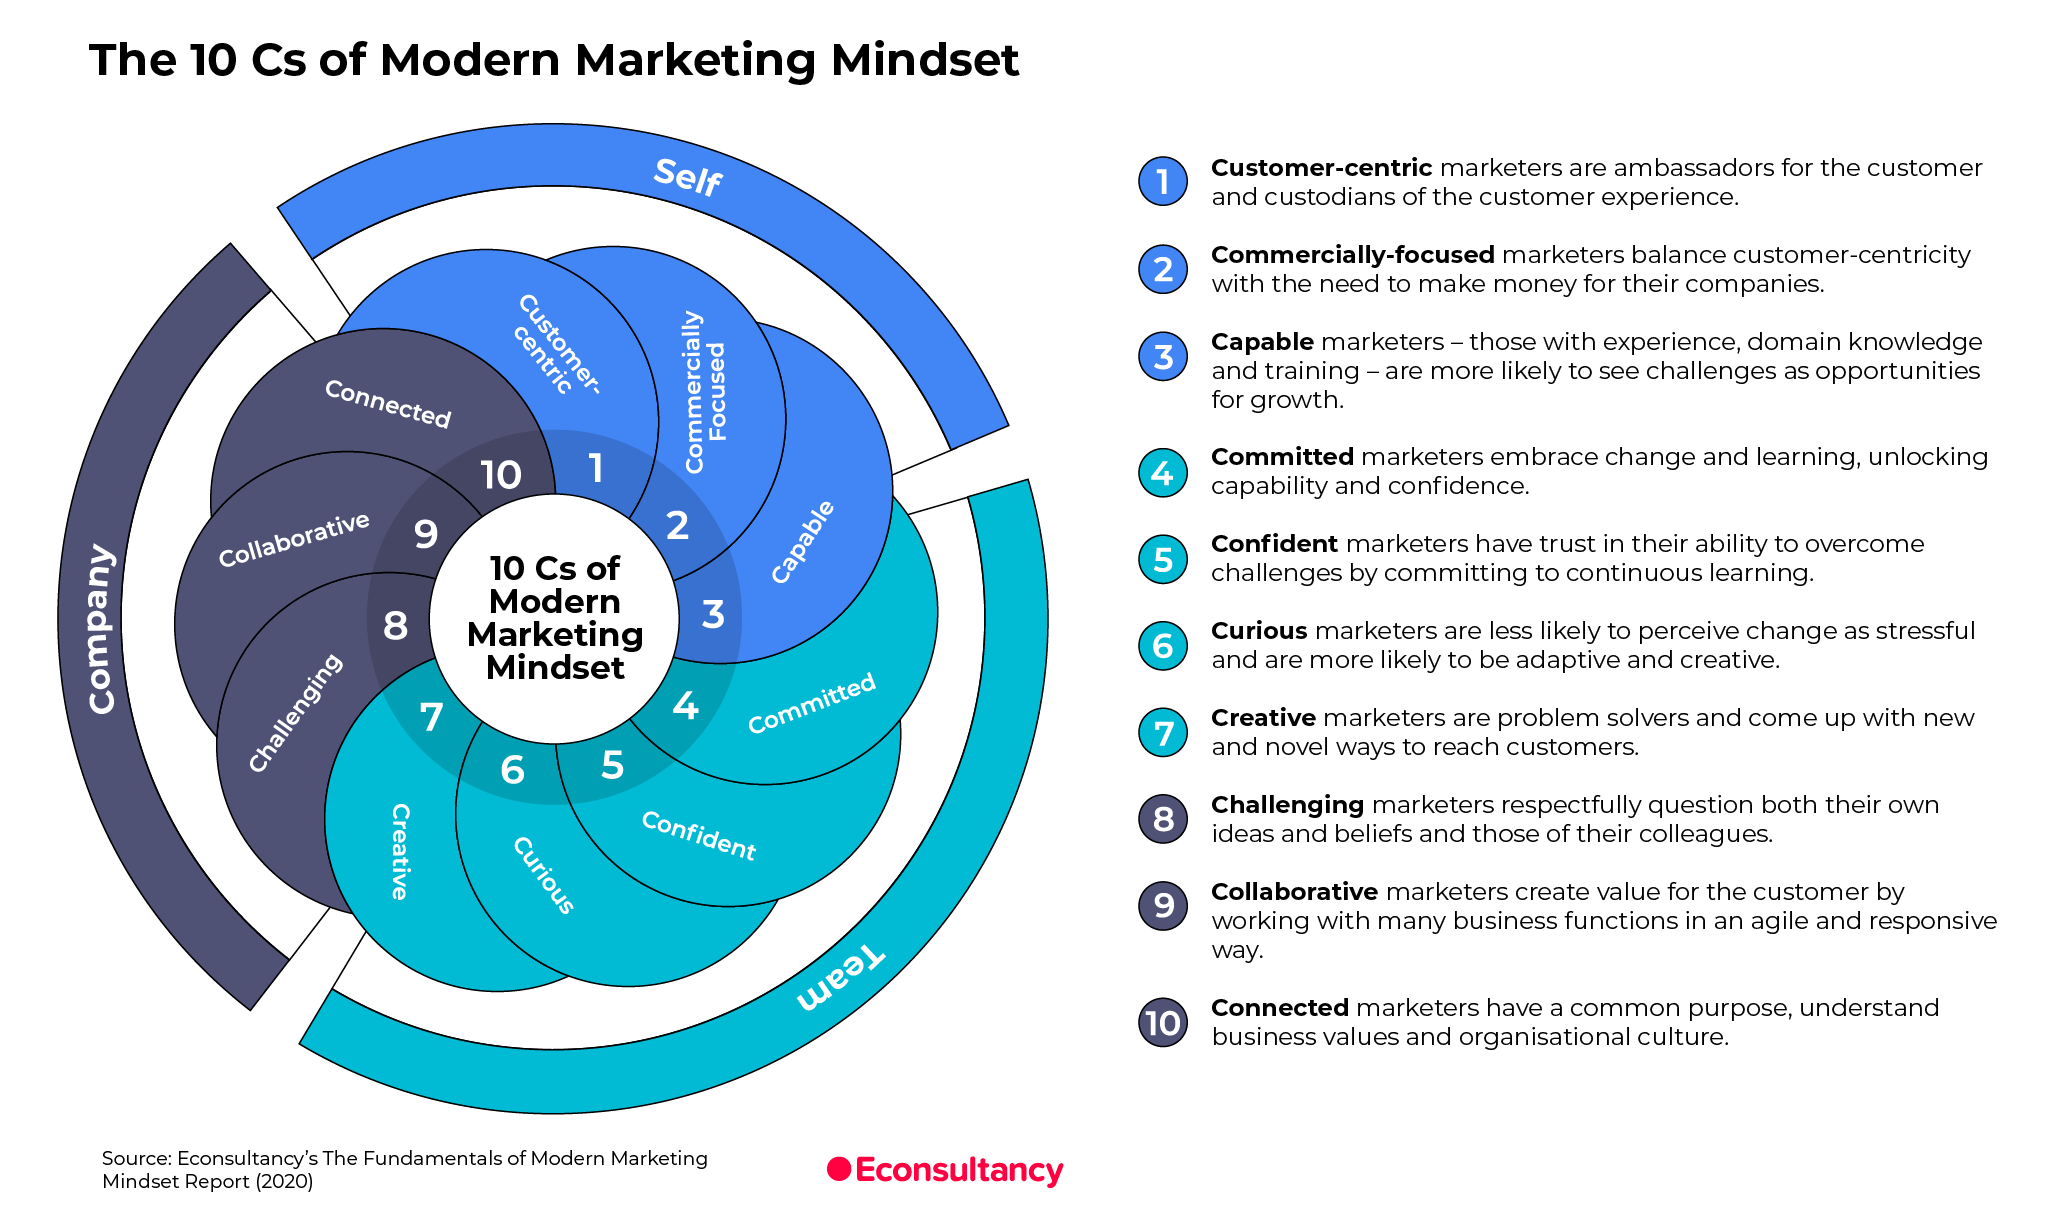 The 10Cs of Modern Marketing Mindset